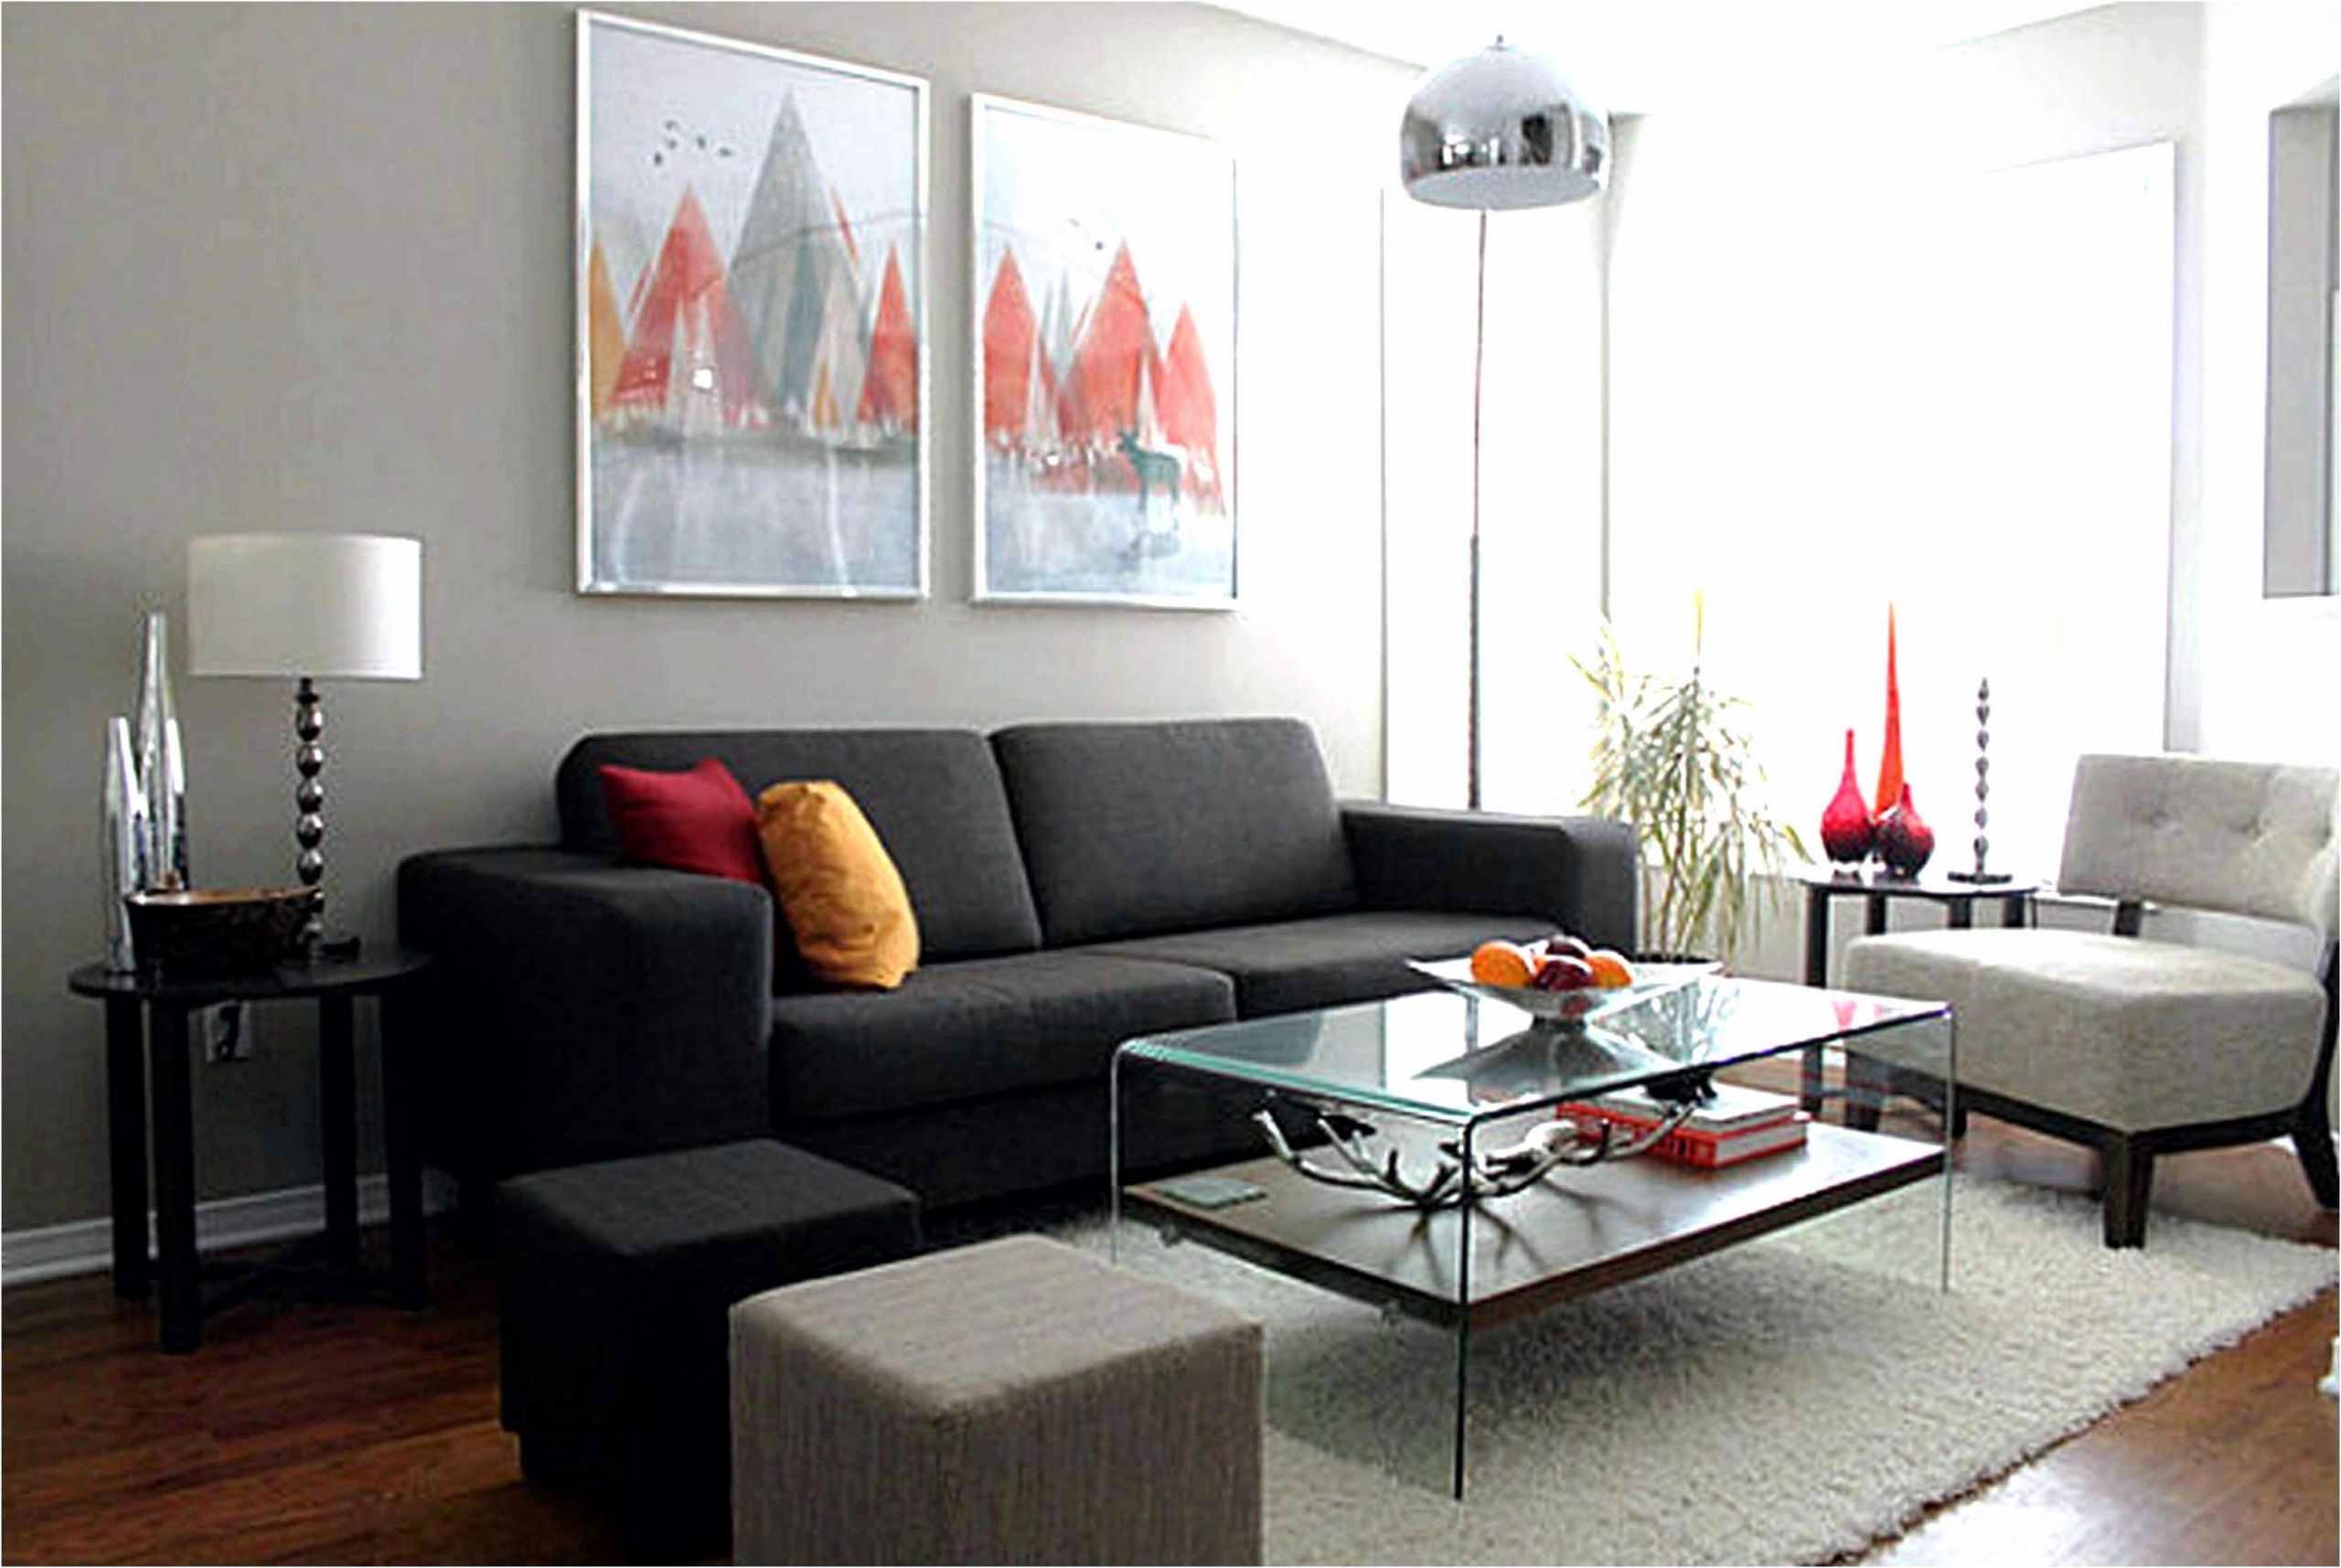 couch rot neu rot furs wohnzimmer idee fur wohnzimmer neu couch design ymvw of wohnzimmer einrichtungen